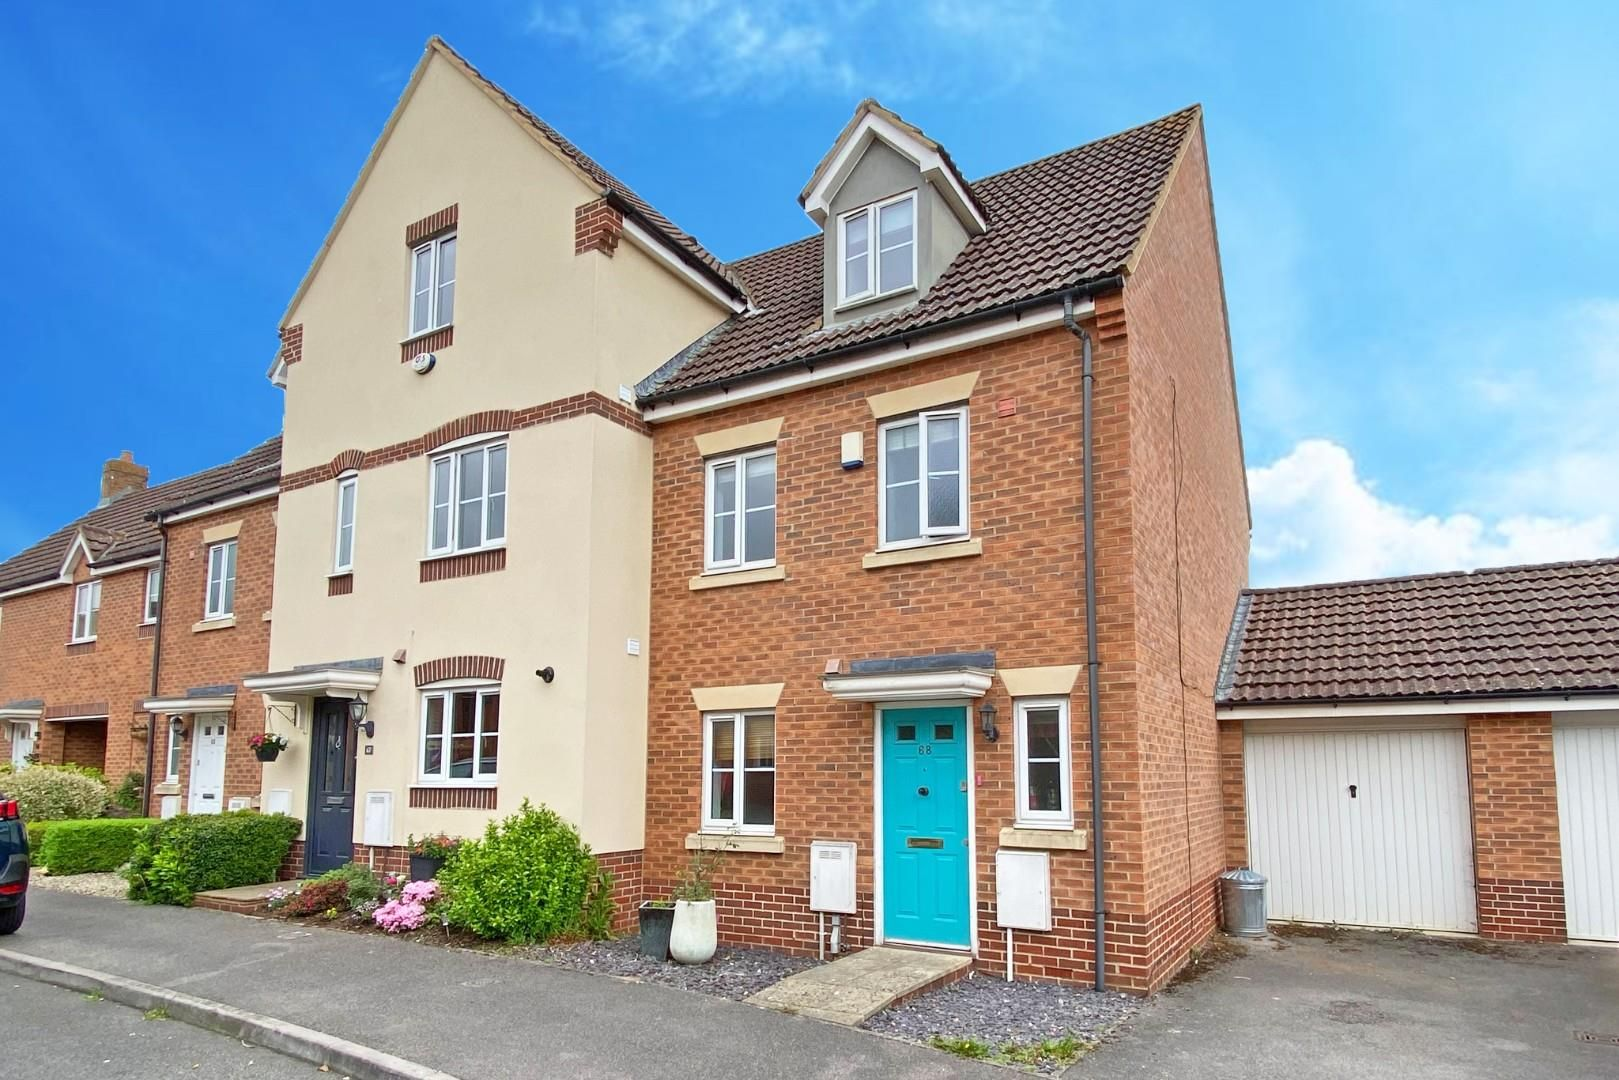 3 bed end of terrace to rent in Shinfield - Property Image 1